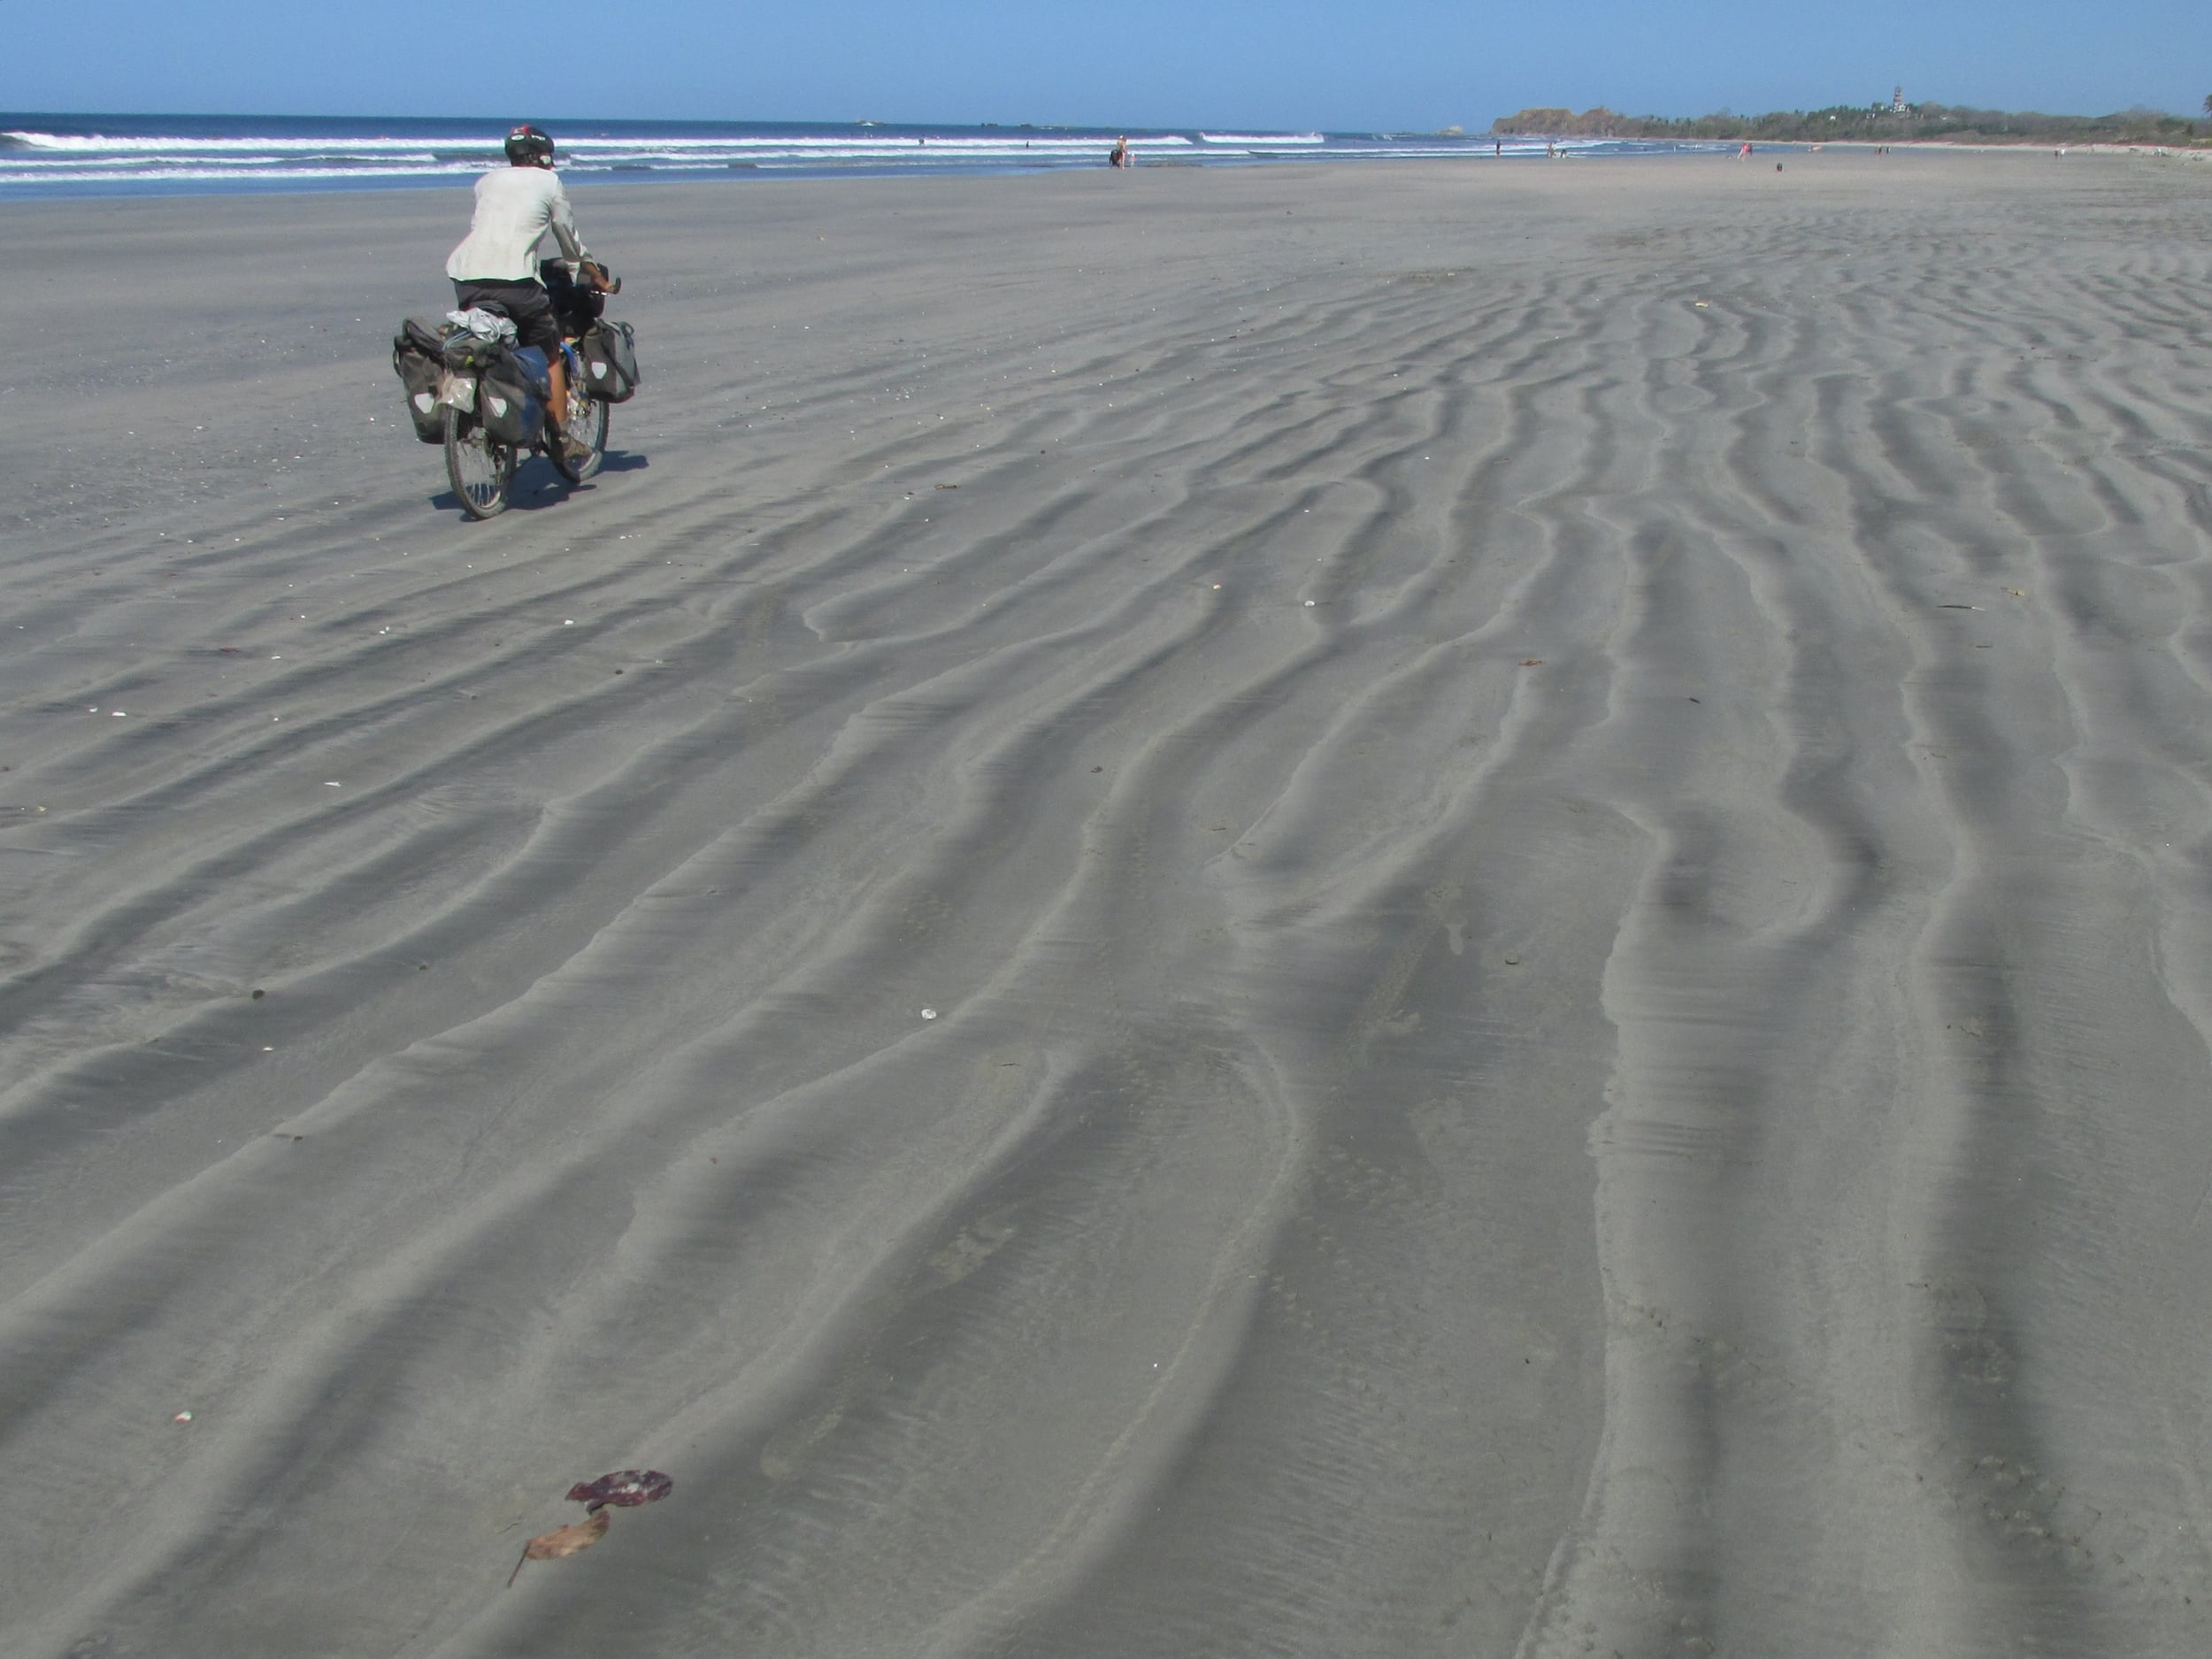 We skipped some dusty, bumpy road for a few miles on the beach. Some of my favorite miles in Costa Rica.